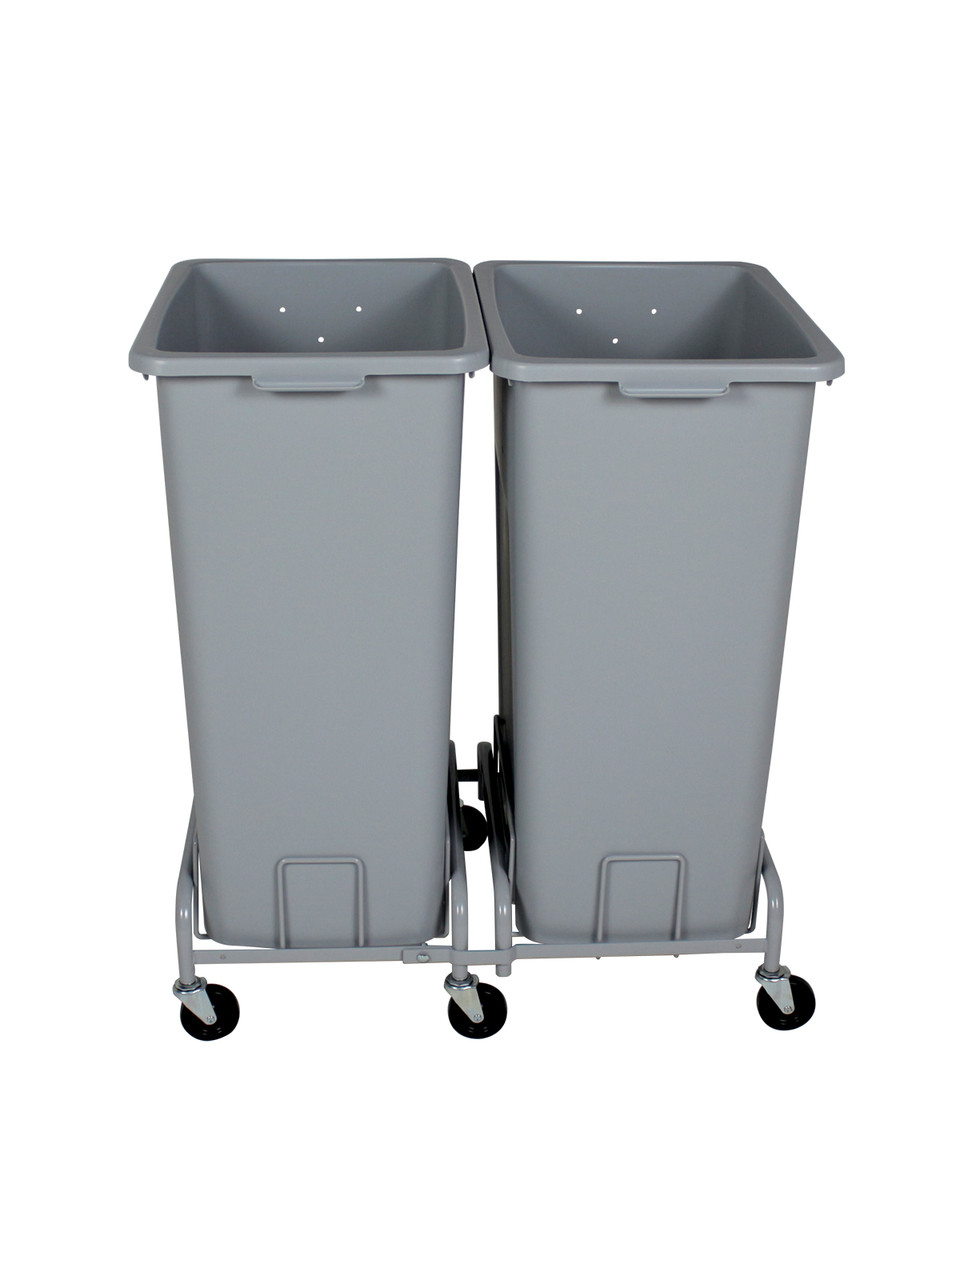 TRASH CANS NOT INCLUDED